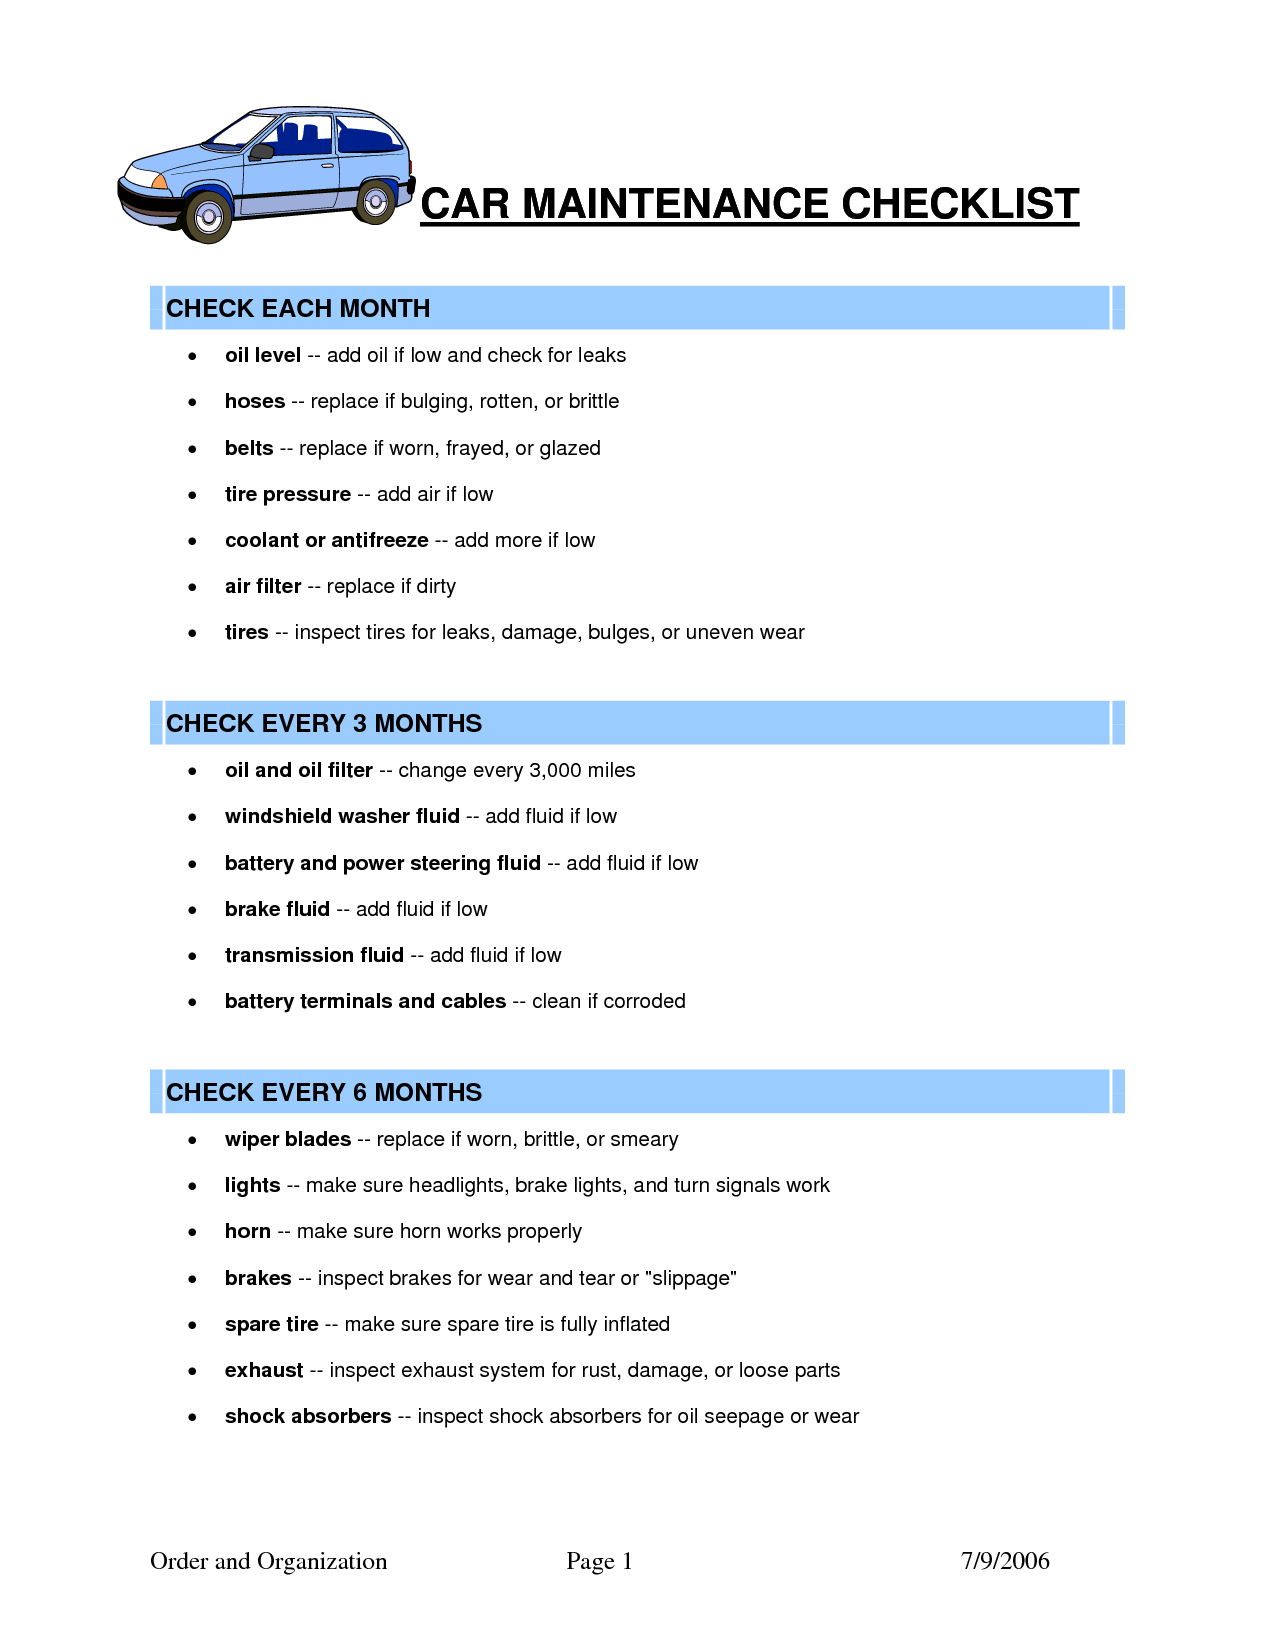 Car maintenance checklist template car maintenance tips pinterest auto maintenance life - Reasons always schedule regular home inspection ...